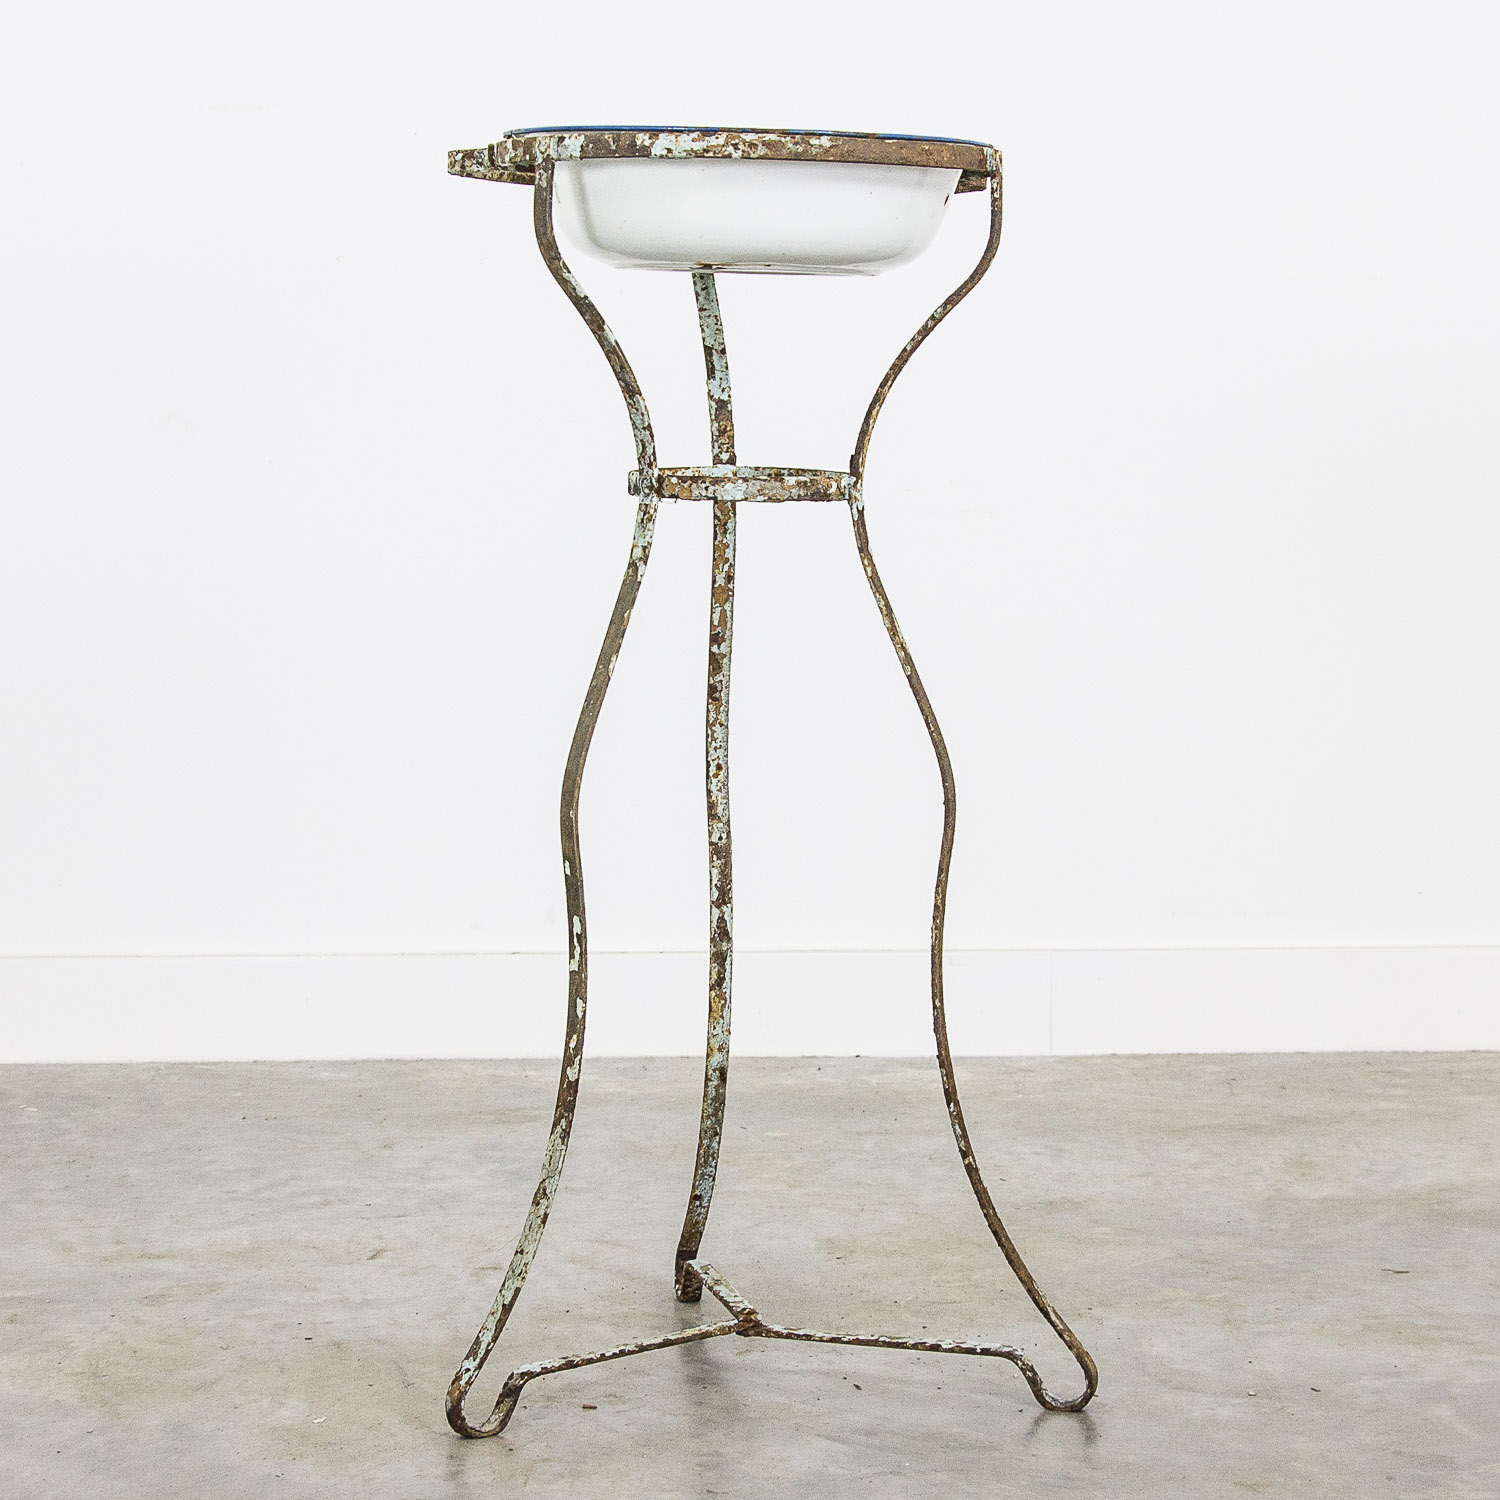 Antique iron wash stand